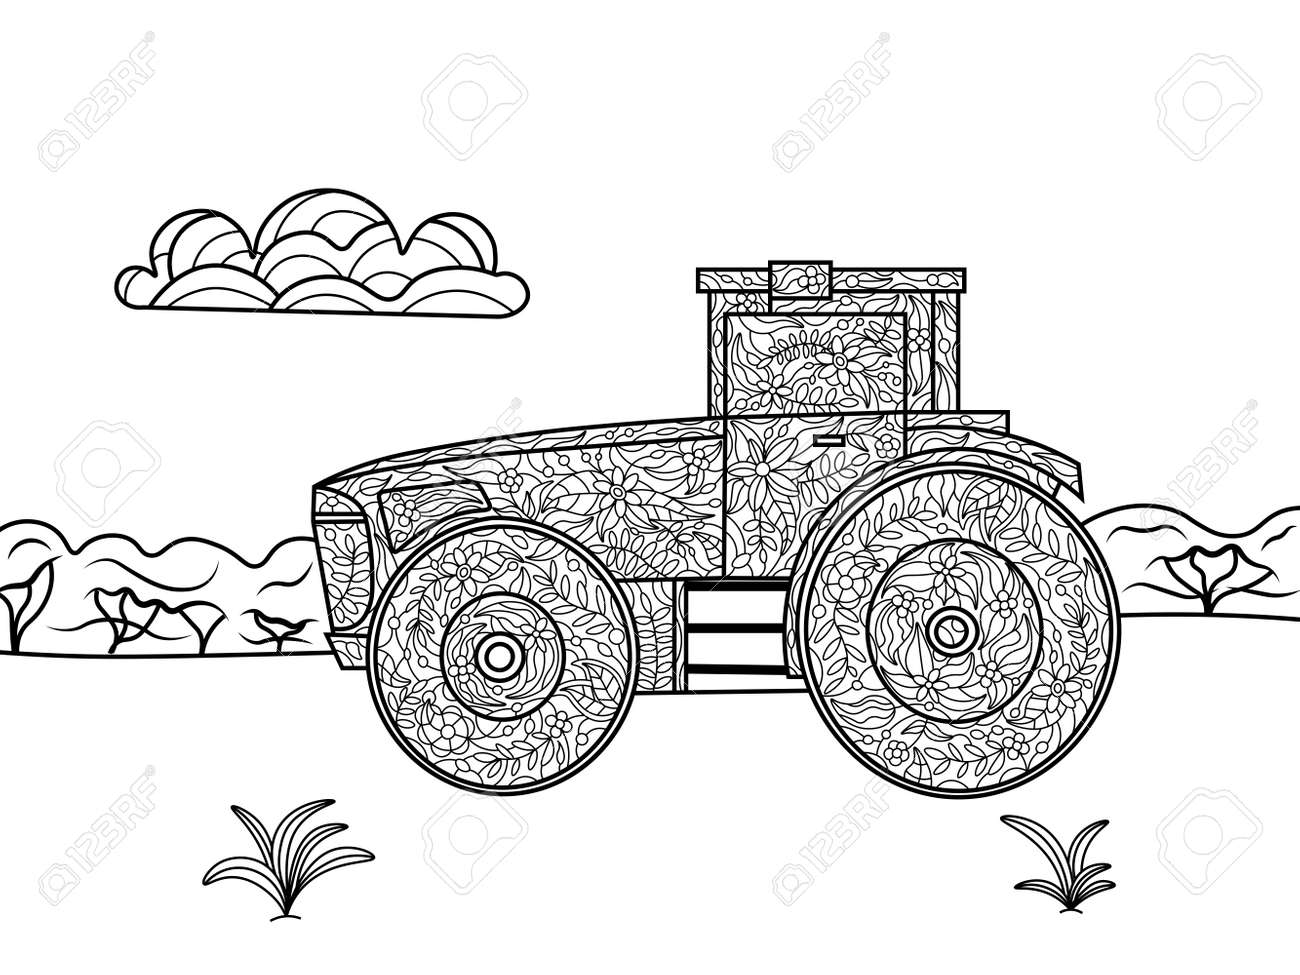 Tractor Coloring Book For Adults Vector Illustration. Black And ...